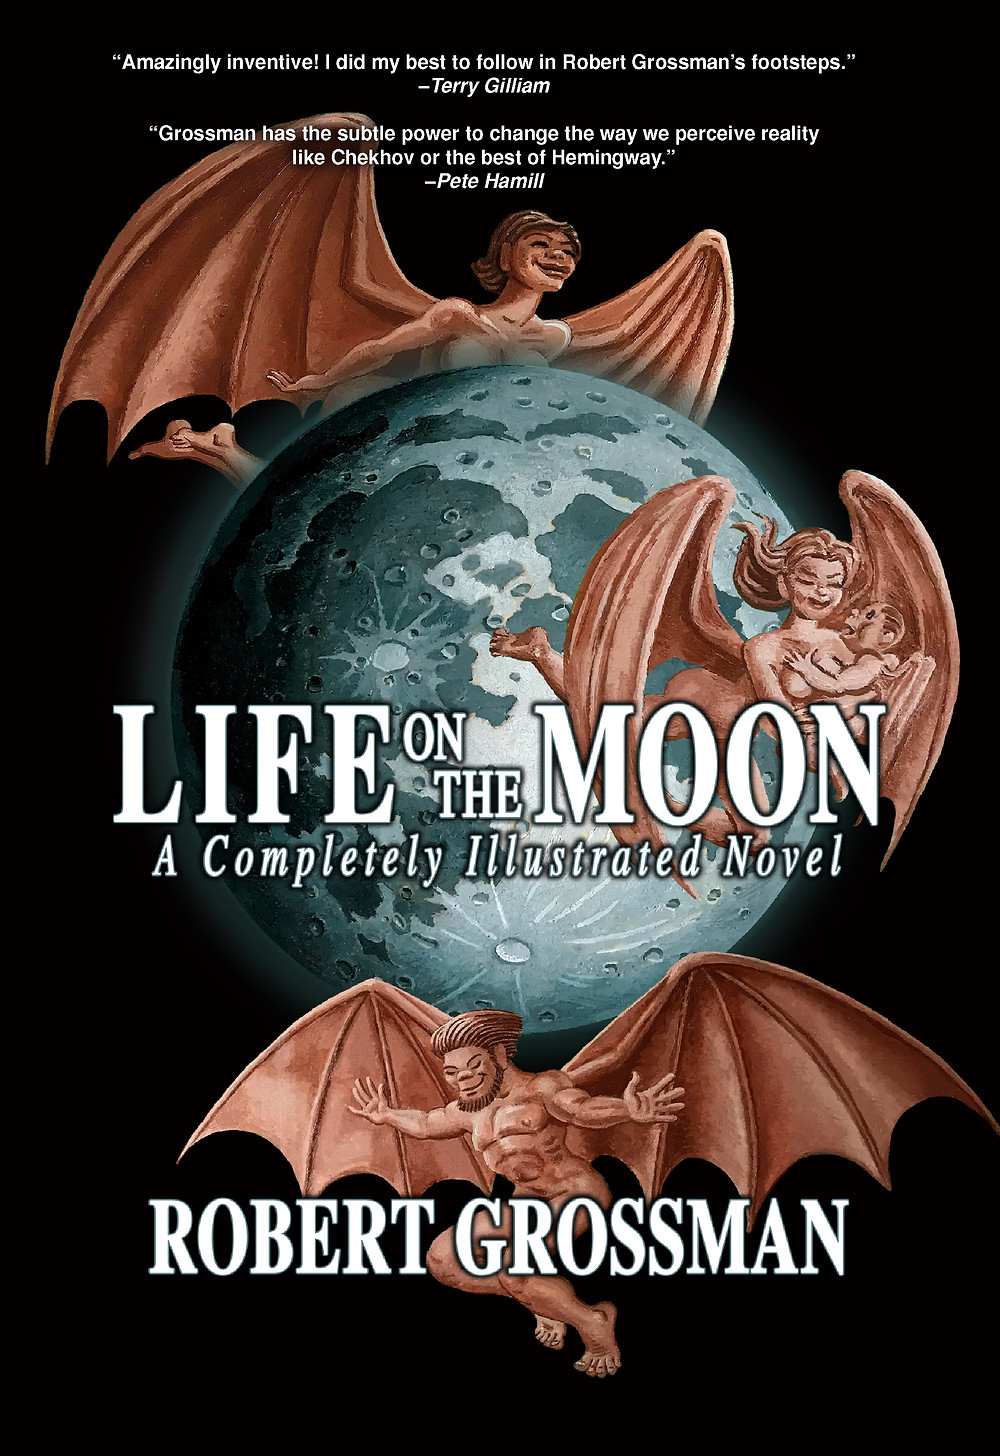 Robert Grossman completed his illustrated novel about the Great Moon Hoax.